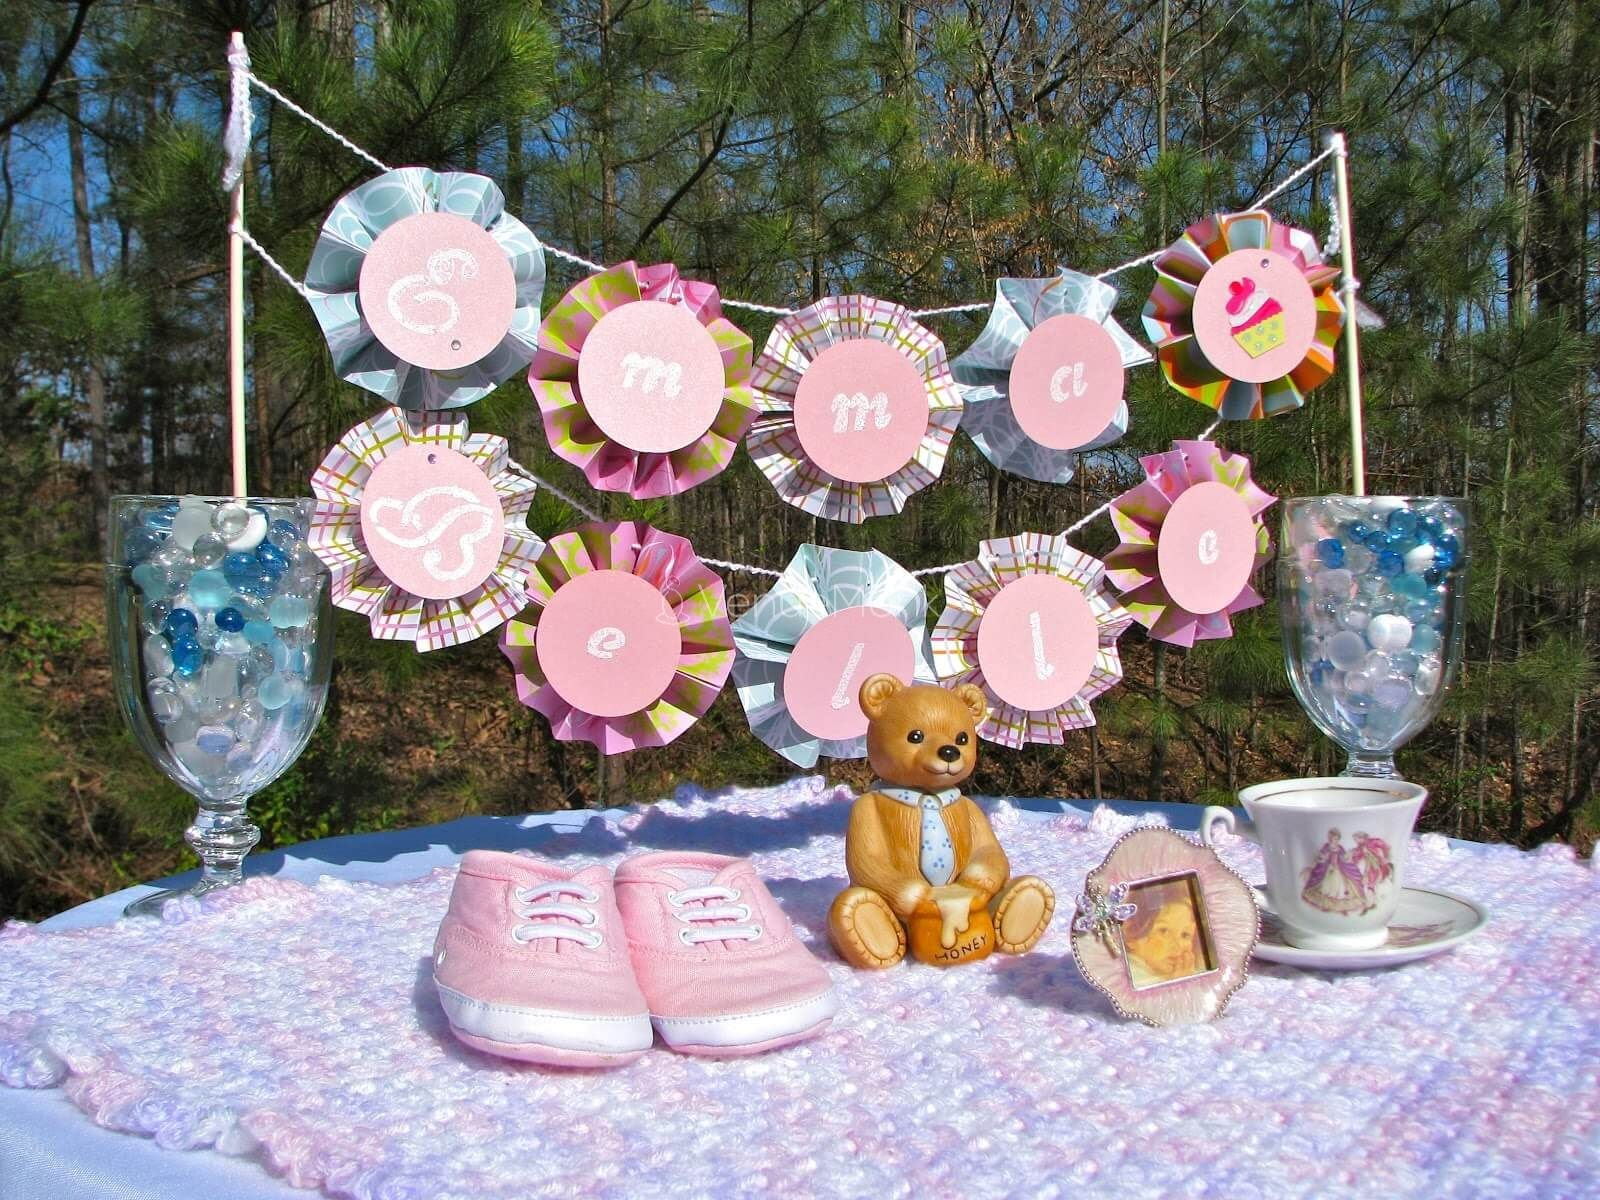 20+ New and Unique Baby Shower Decor Ideas